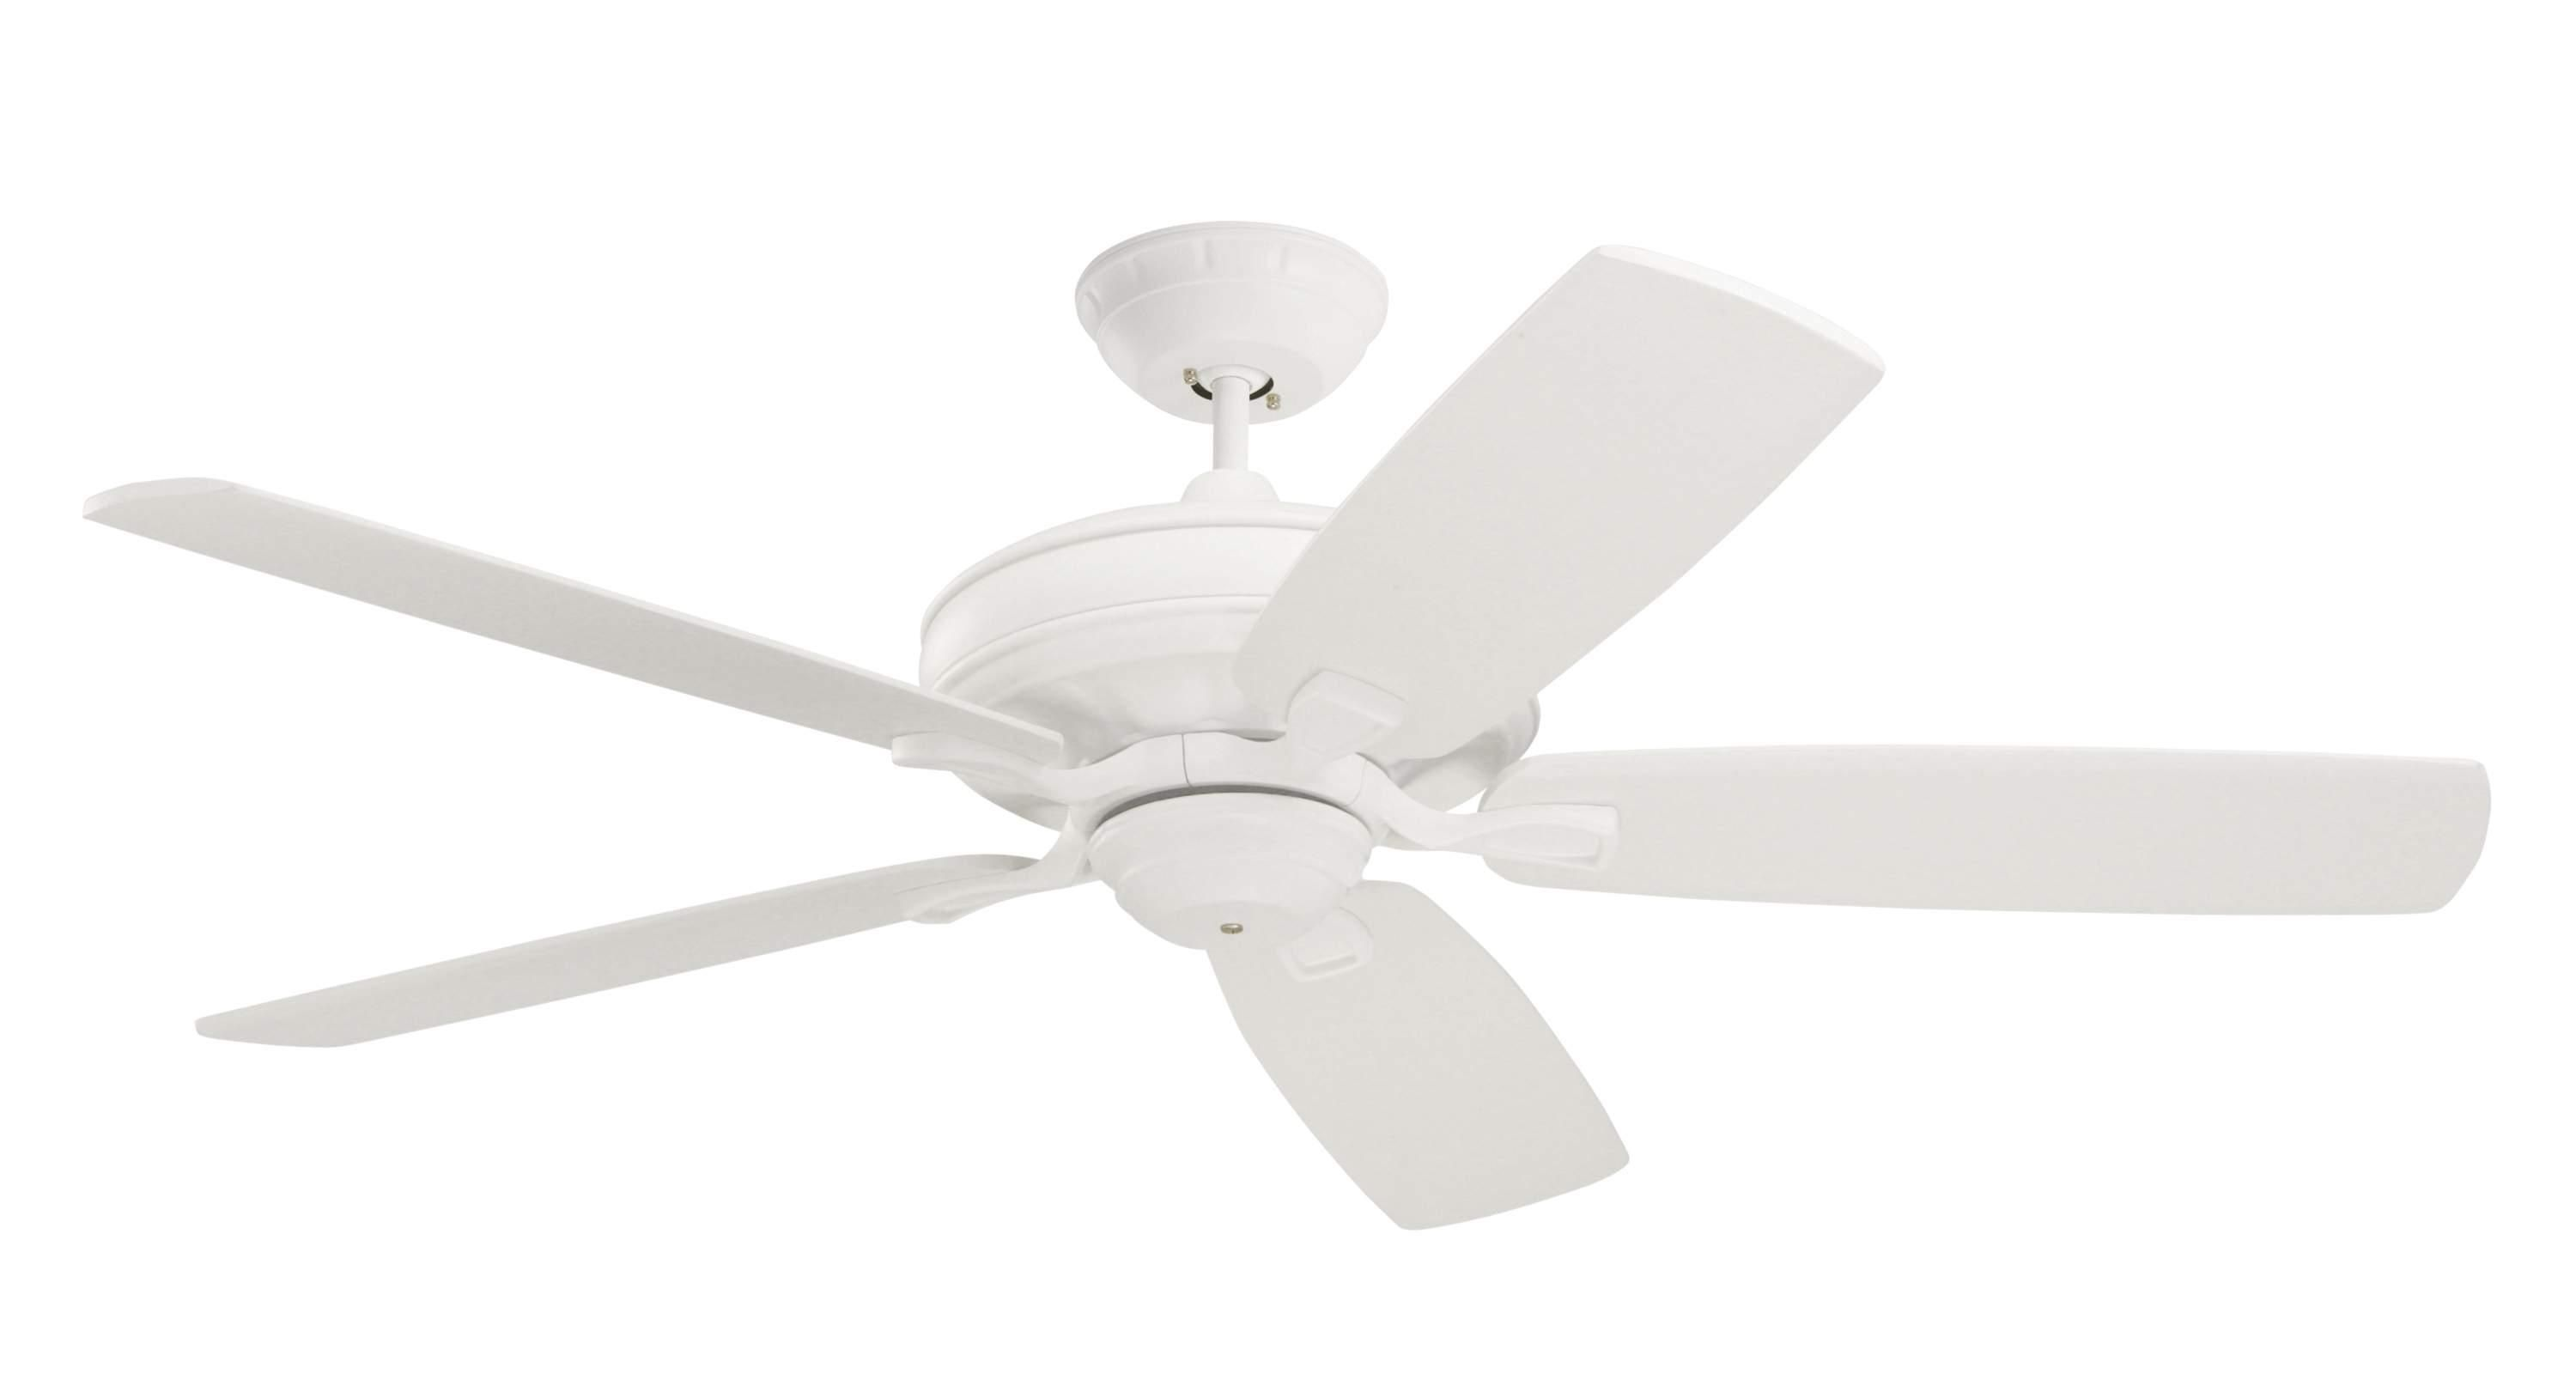 Industrial 56 In White High Performance Indoor Outdoor Ceiling Fan Cp56hpwp The Home Depot Ceiling Fan Outdoor Ceiling Fans Ceiling Fan Installation